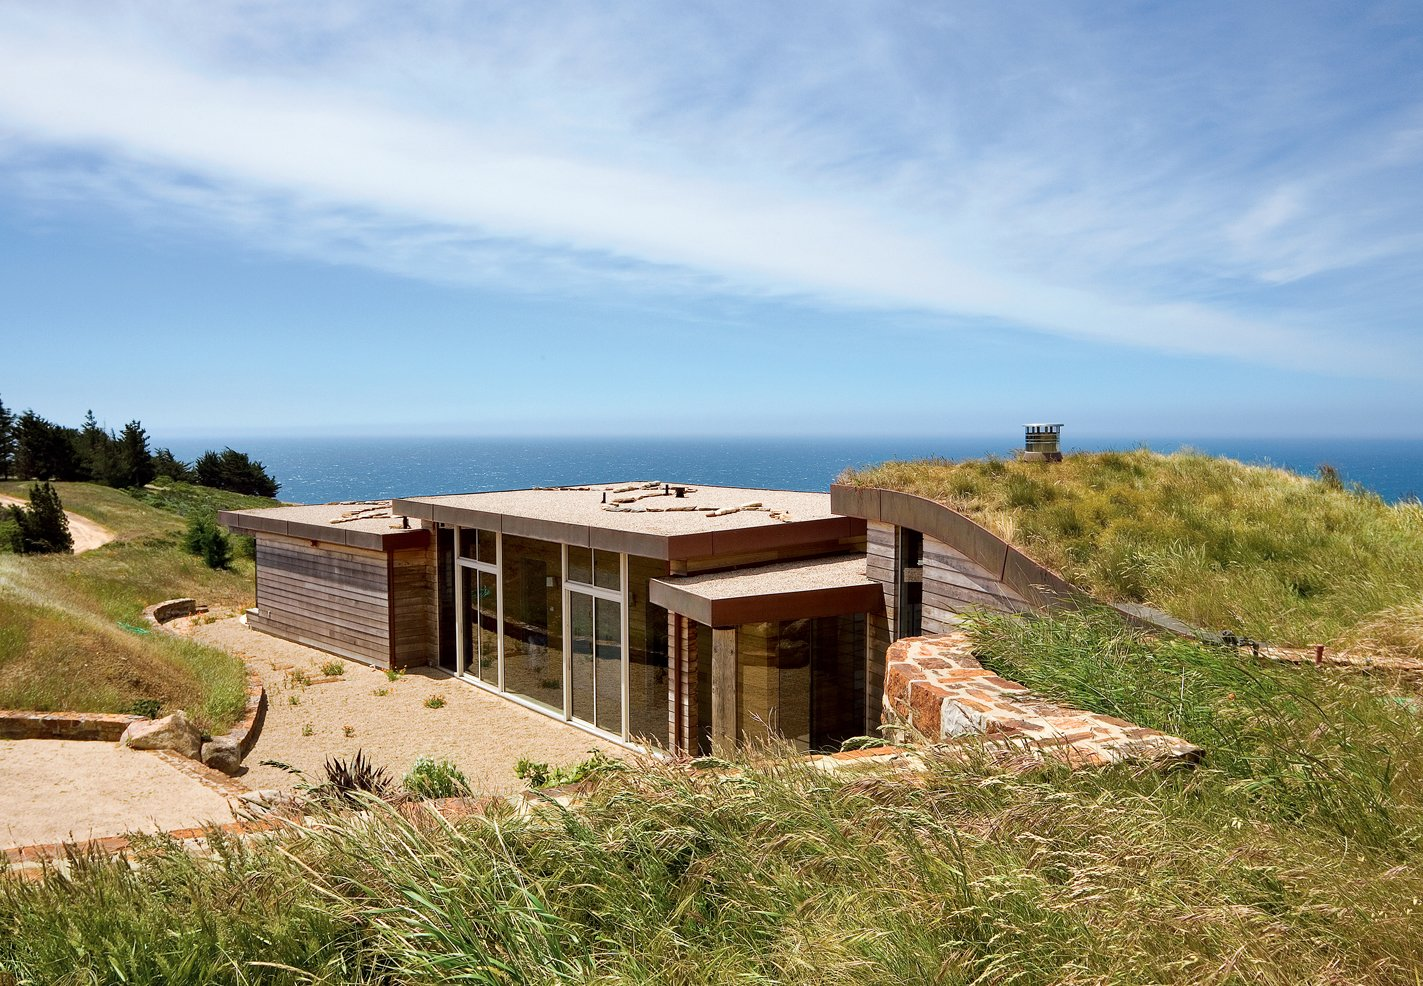 """I've been all around the world, and whenever I come back here, I realize that the Pacific Ocean seen from those cliffs is the most beautiful view on earth,"" says the resident of this house built into a hillside in Big Sur, California.  Homes with a Waterfront View by Diana Budds"